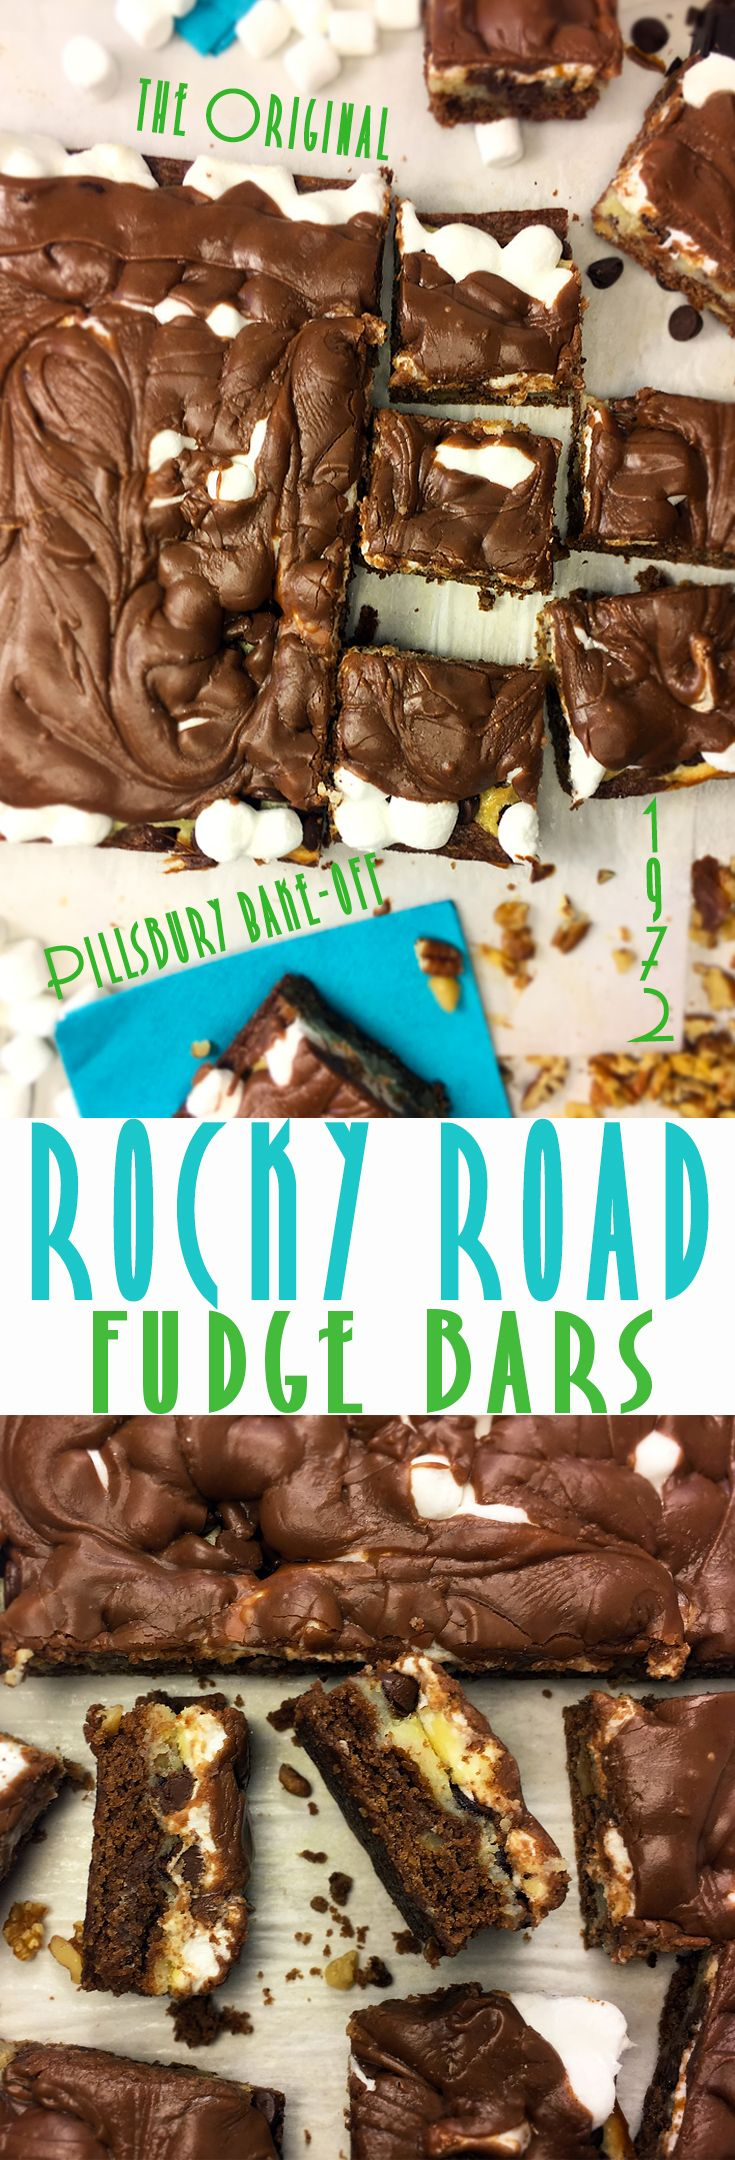 Original 1972 Pillsbury Bake Off Recipe! Rocky Road Fudge Bars ** #Fudge #Bars! #rockyroad #fudge #Pillsbury #bakeoff #original #brownie